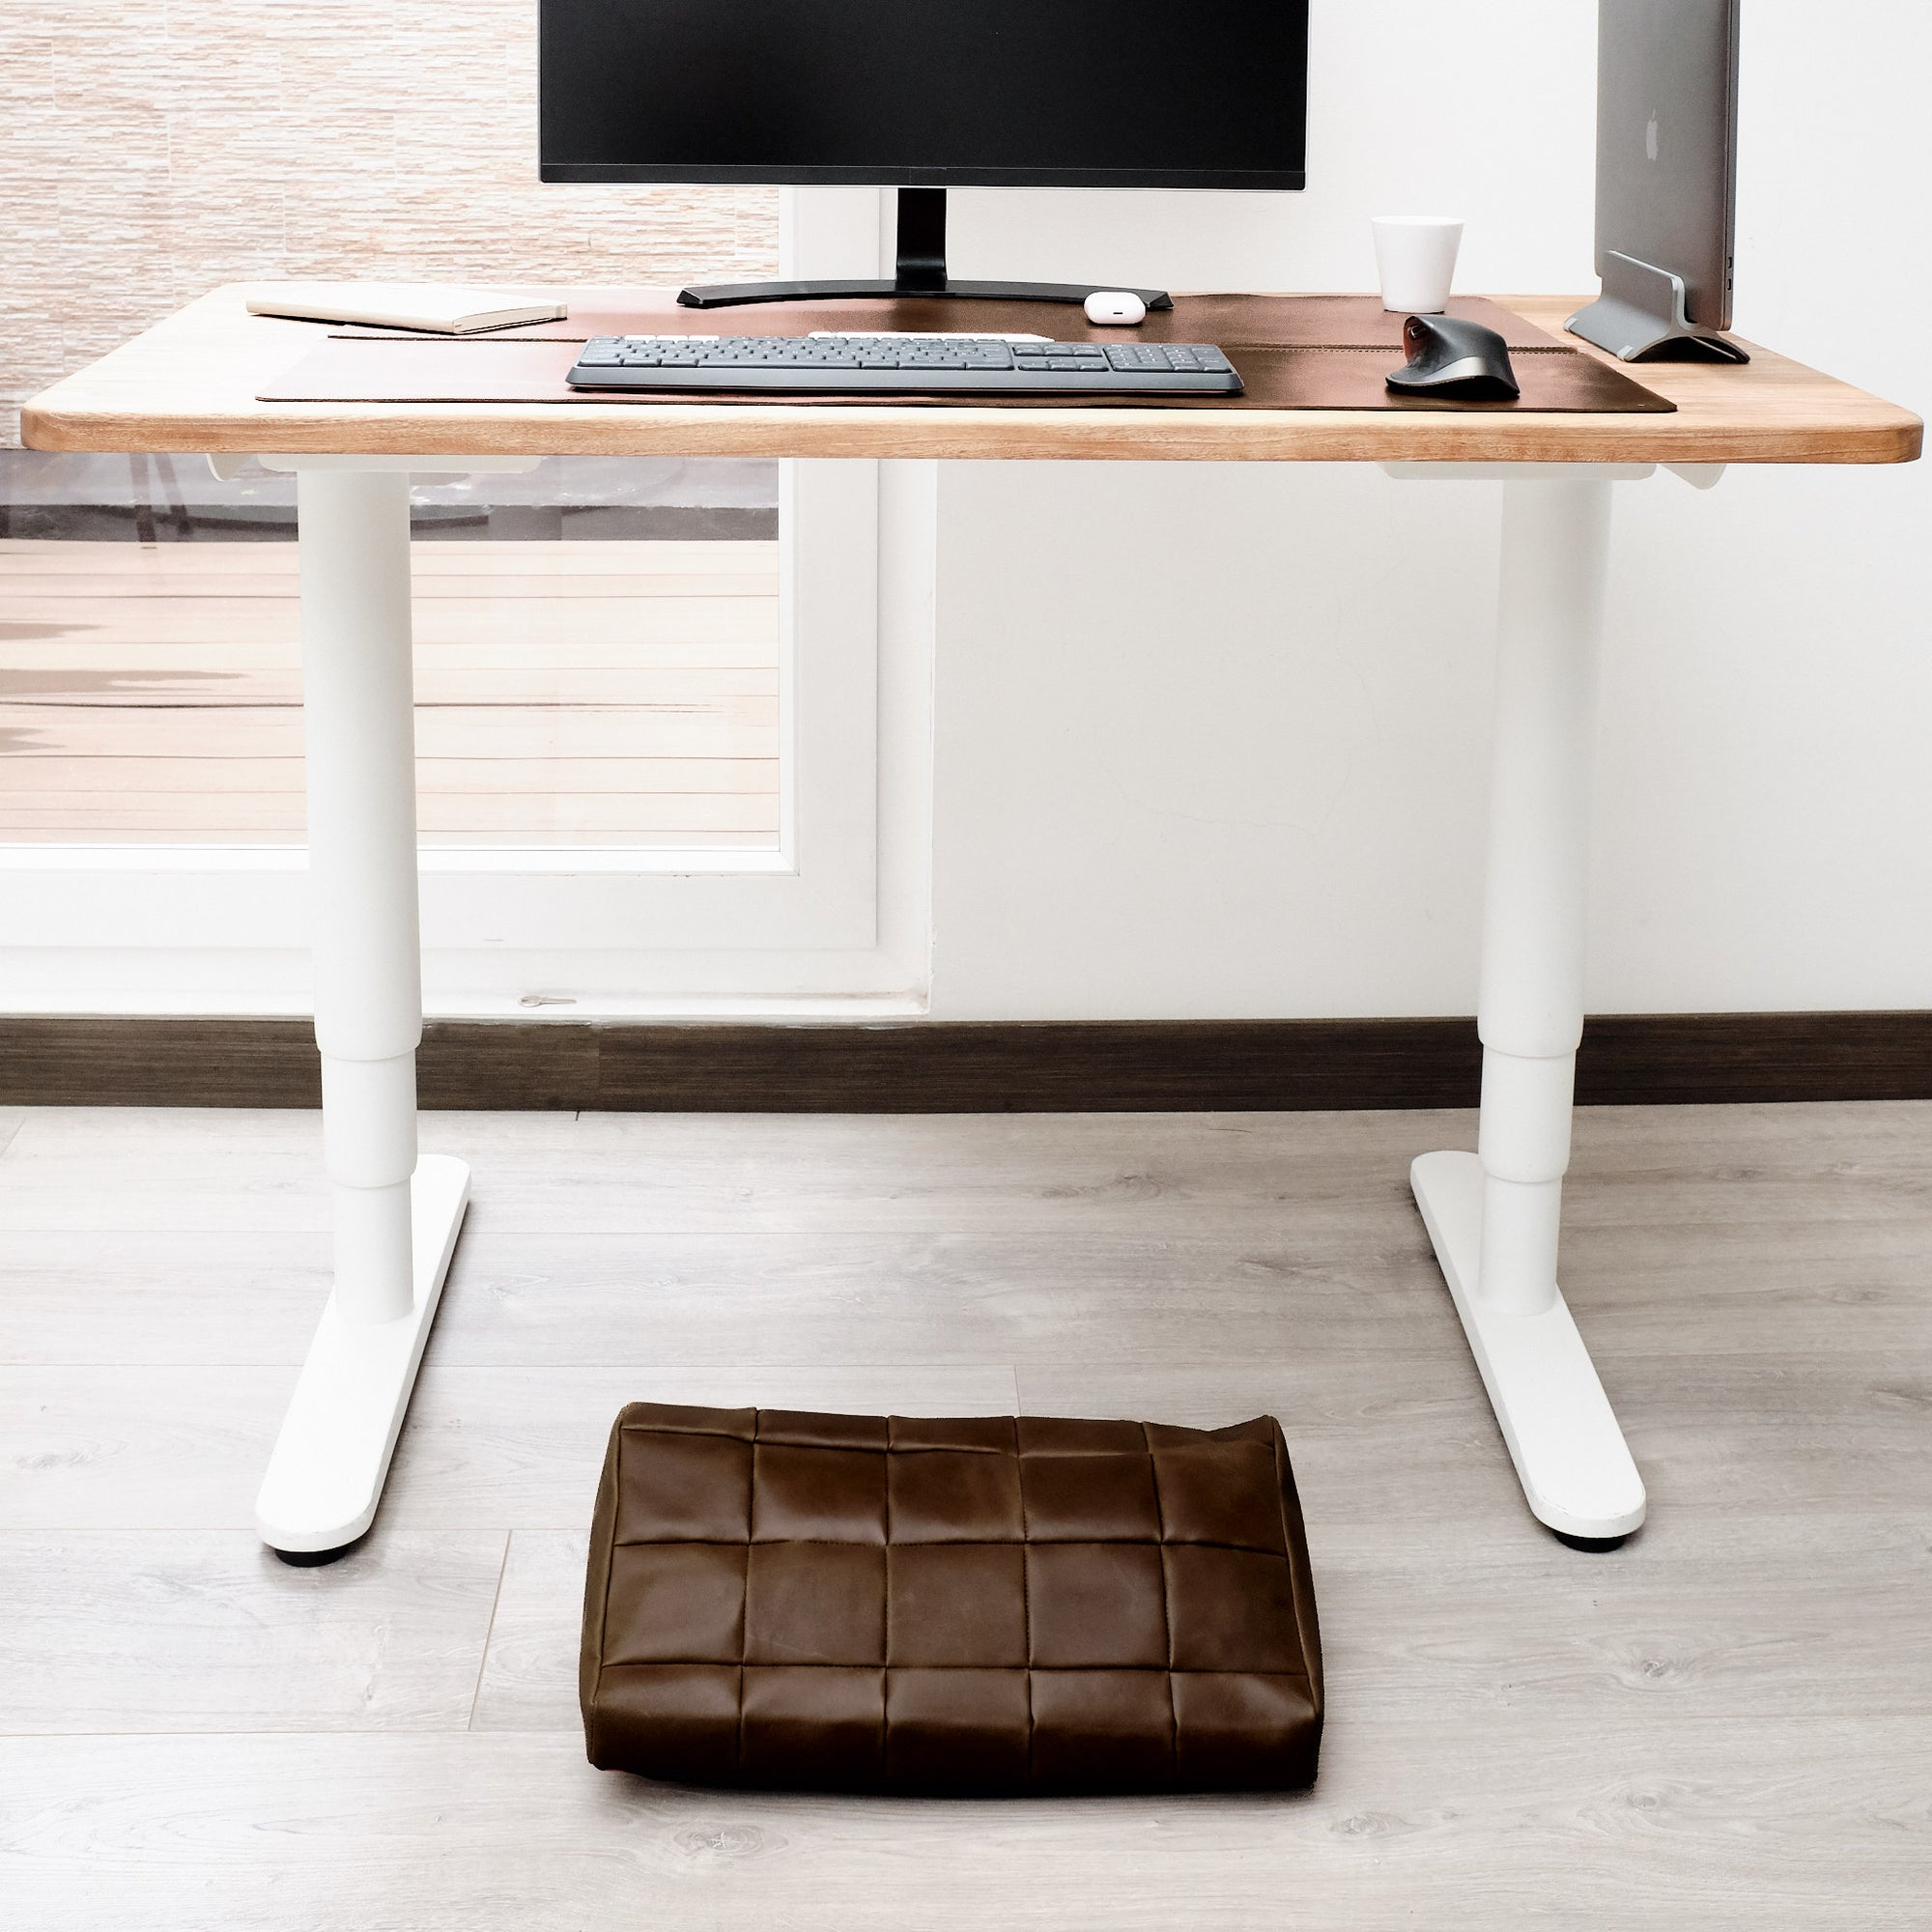 Cover. Ergonomic under desk footrest cover in brown by Capra Leather